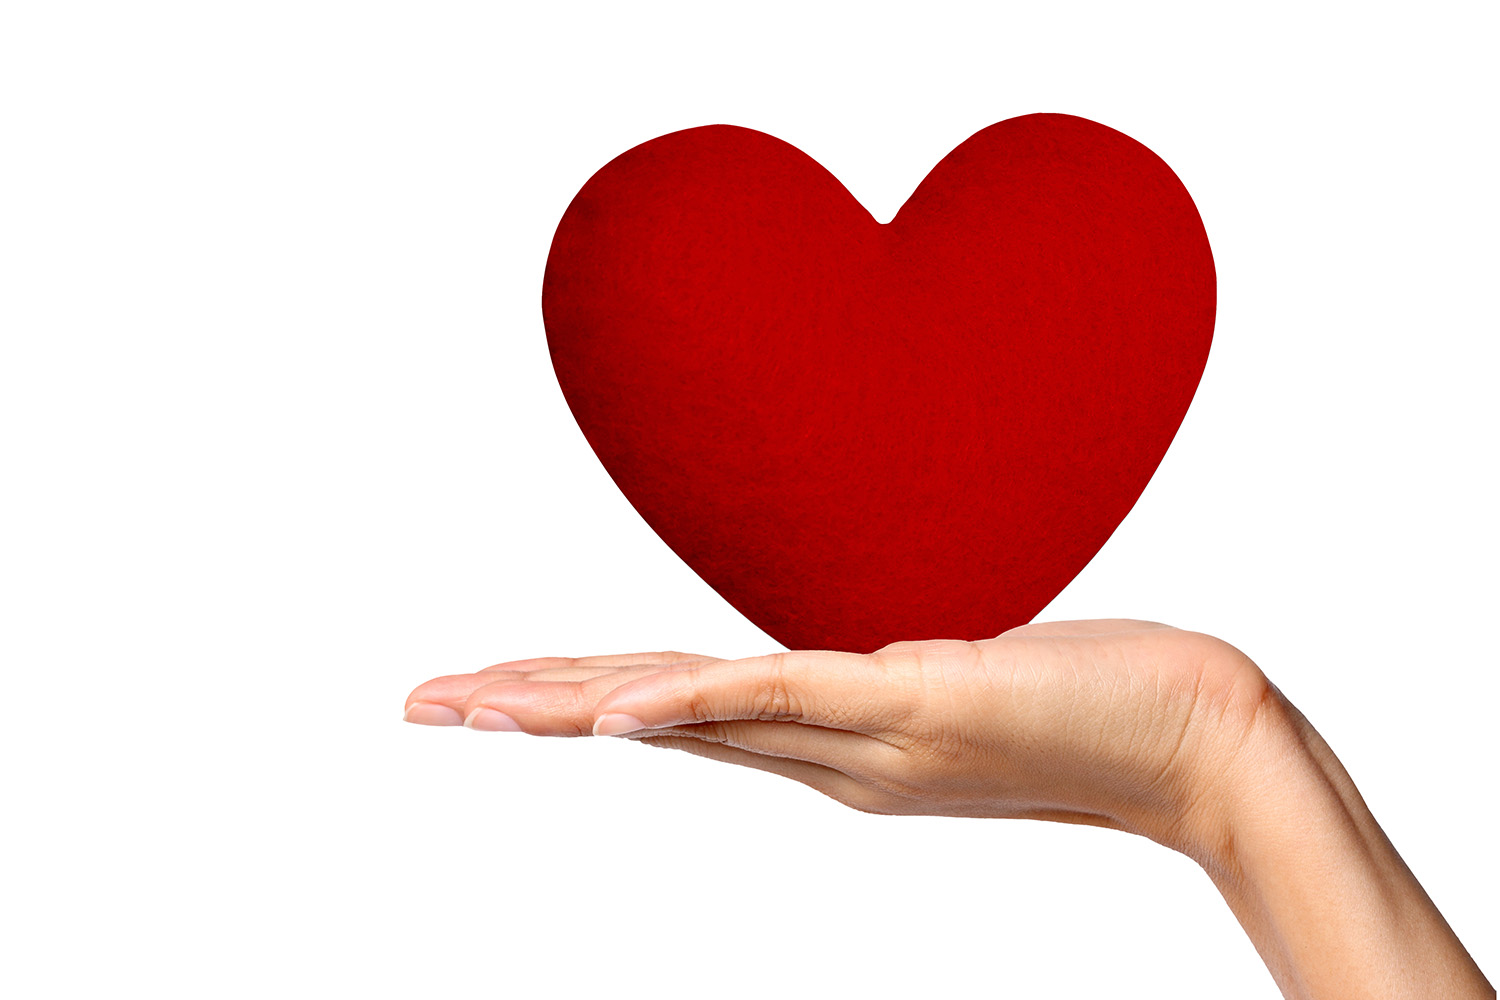 Placed on a red heart-shaped palm 49989